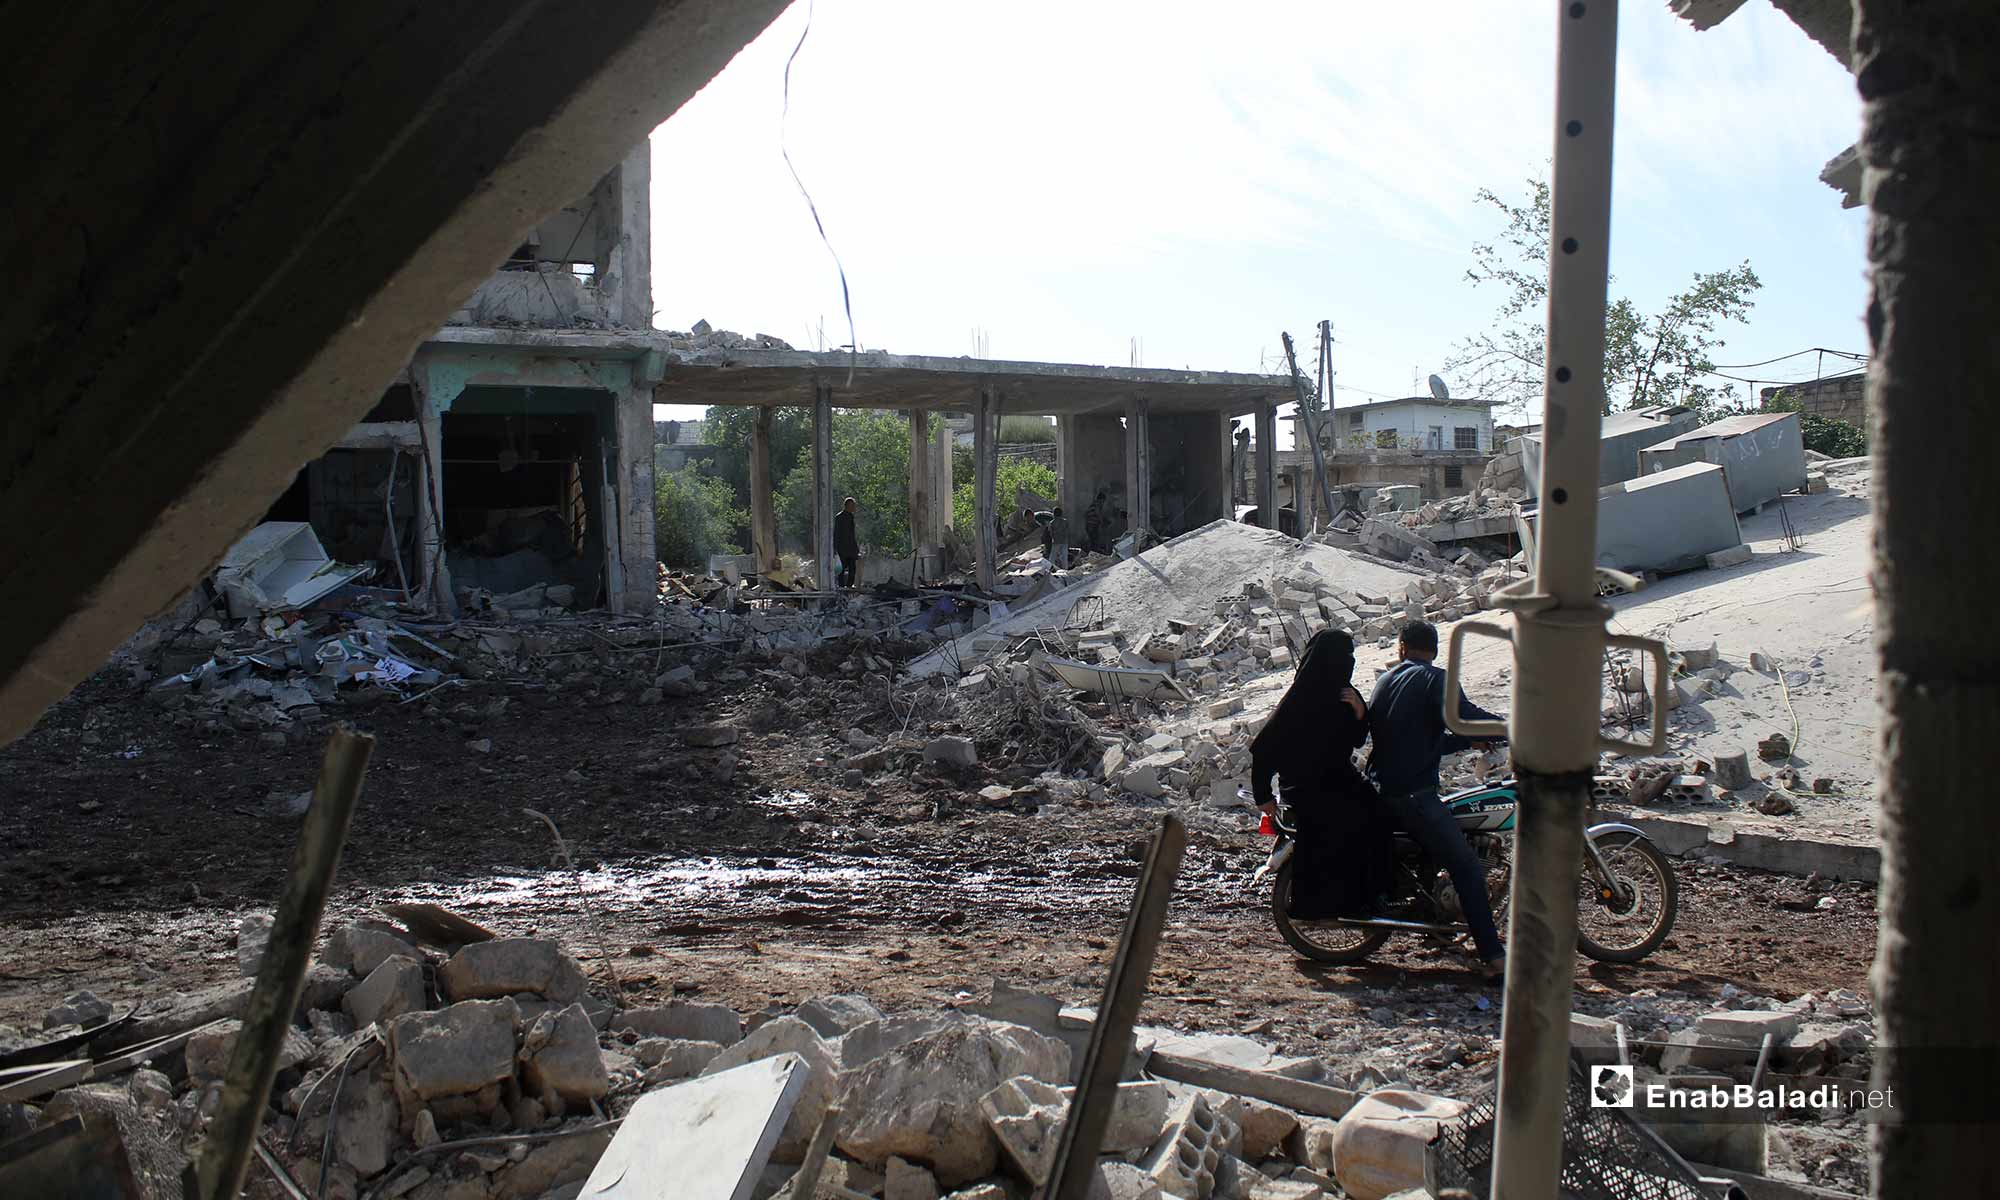 The destruction caused by the shelling of the village of Abadeta, rural Idlib – May 3, 2019 (Enab Baladi)